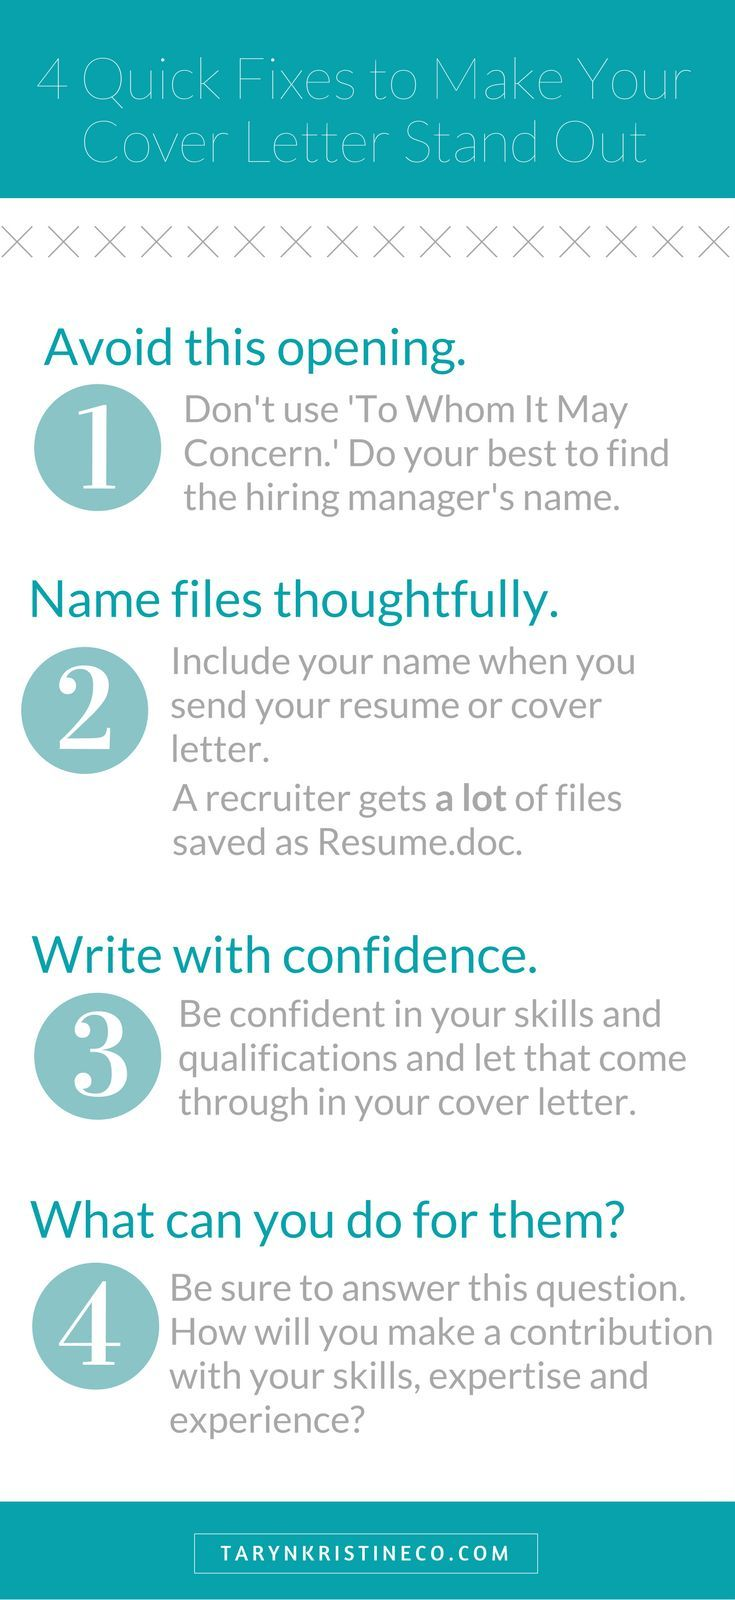 How To Make A Good Cover Letter 20 Best Resumes And Cover Letter Templates Images On Pinterest .